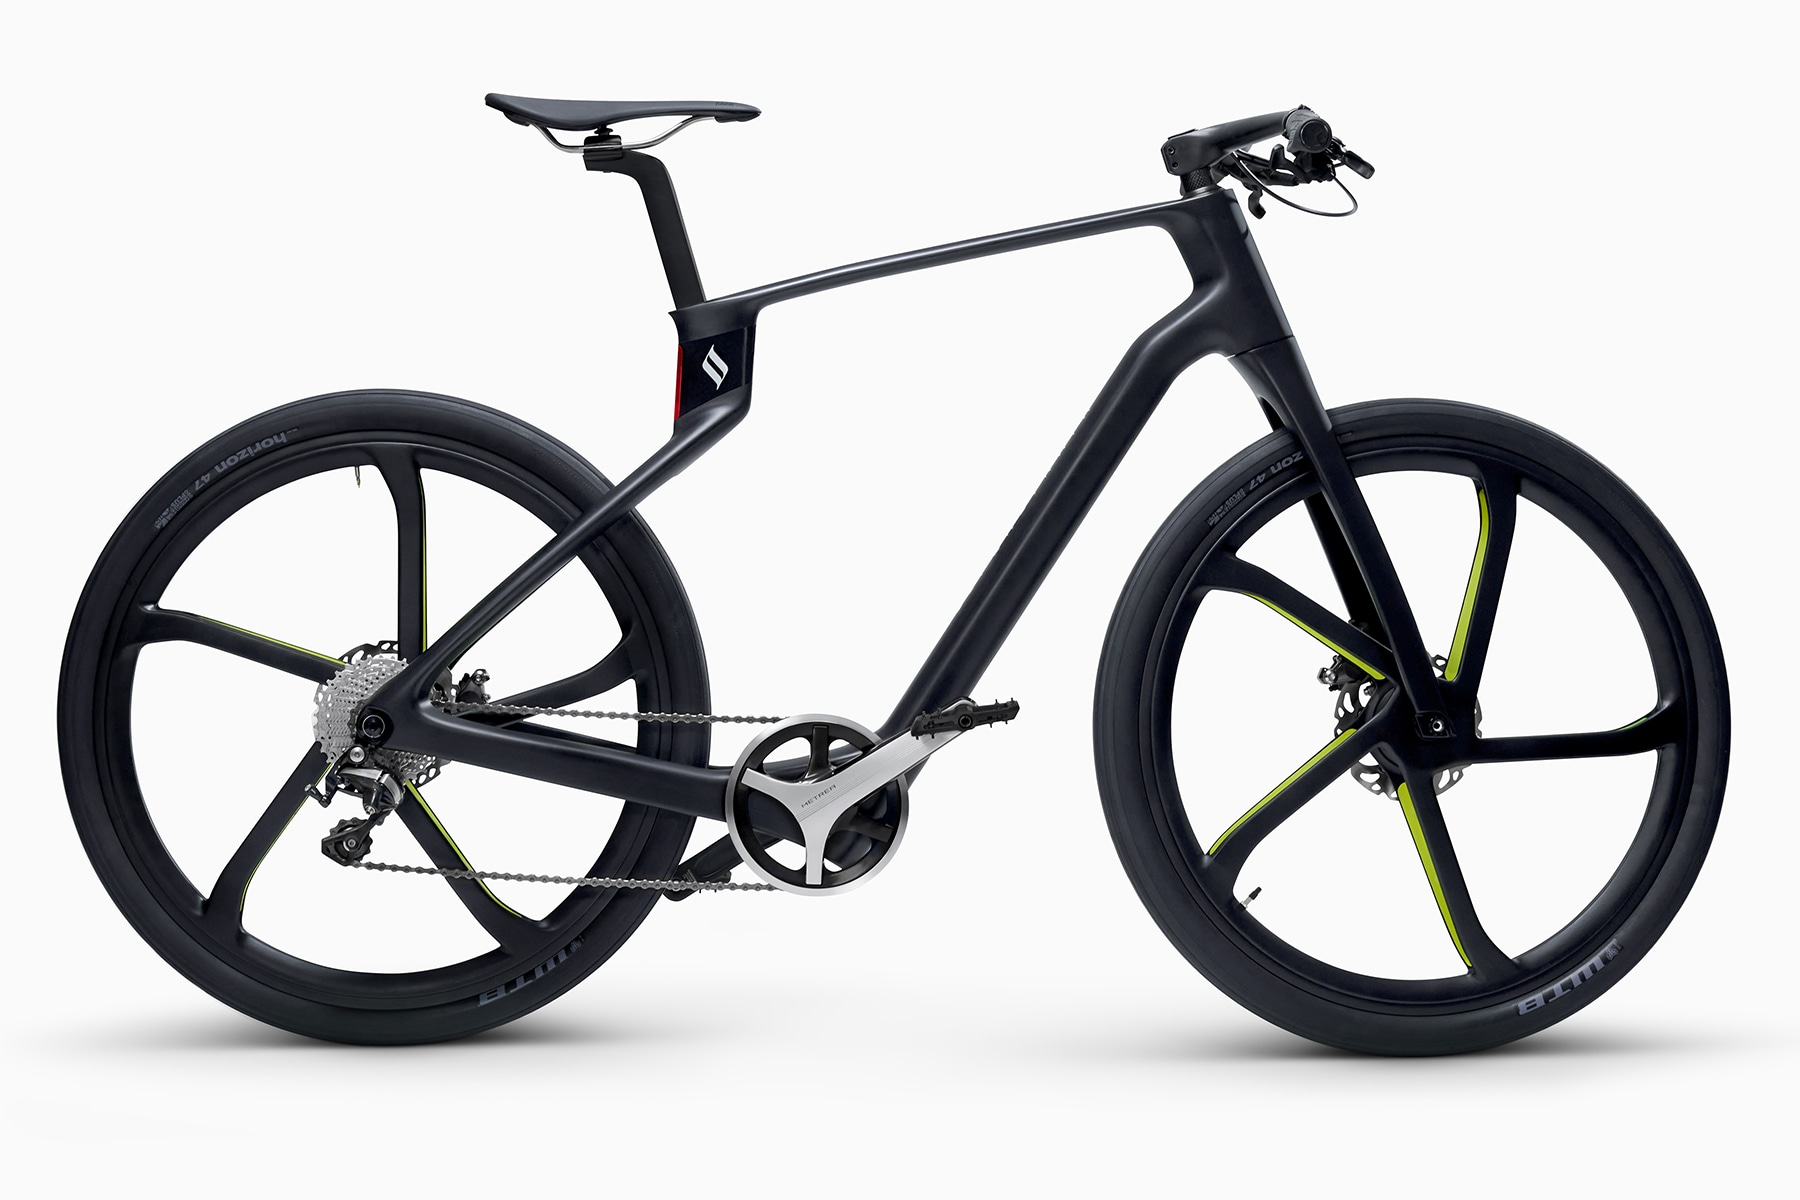 Superstrata's $3,999 Ion is a made-to-measure carbon fiber e-bike | Engadget